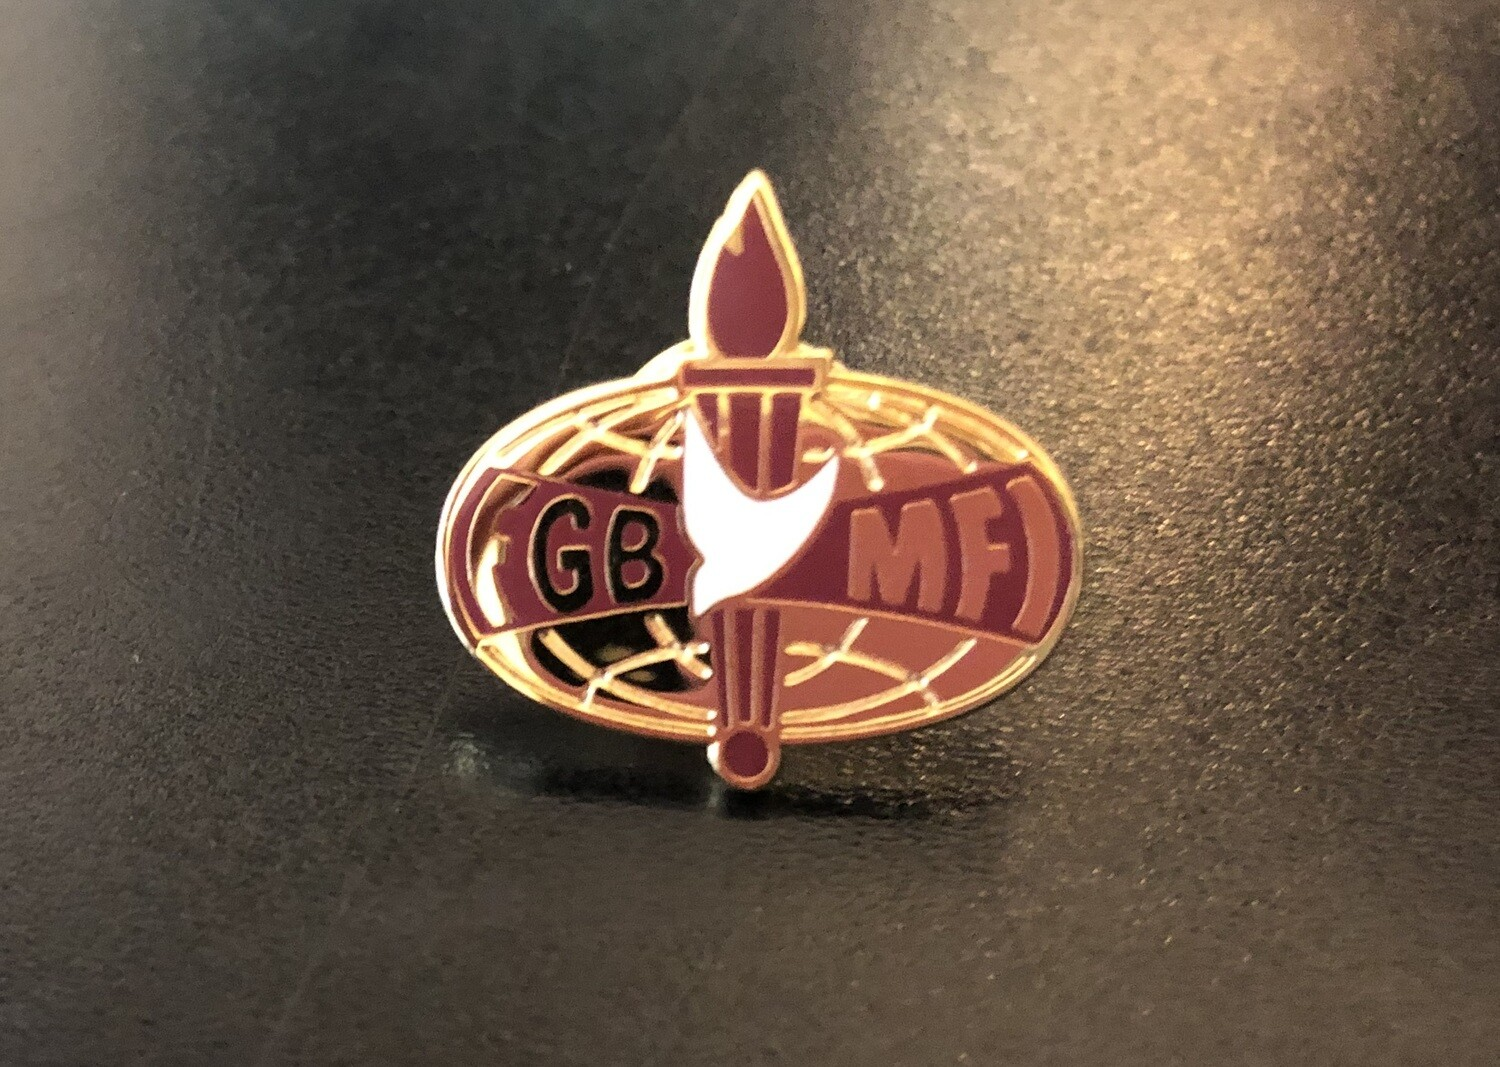 Men's Membership Pin